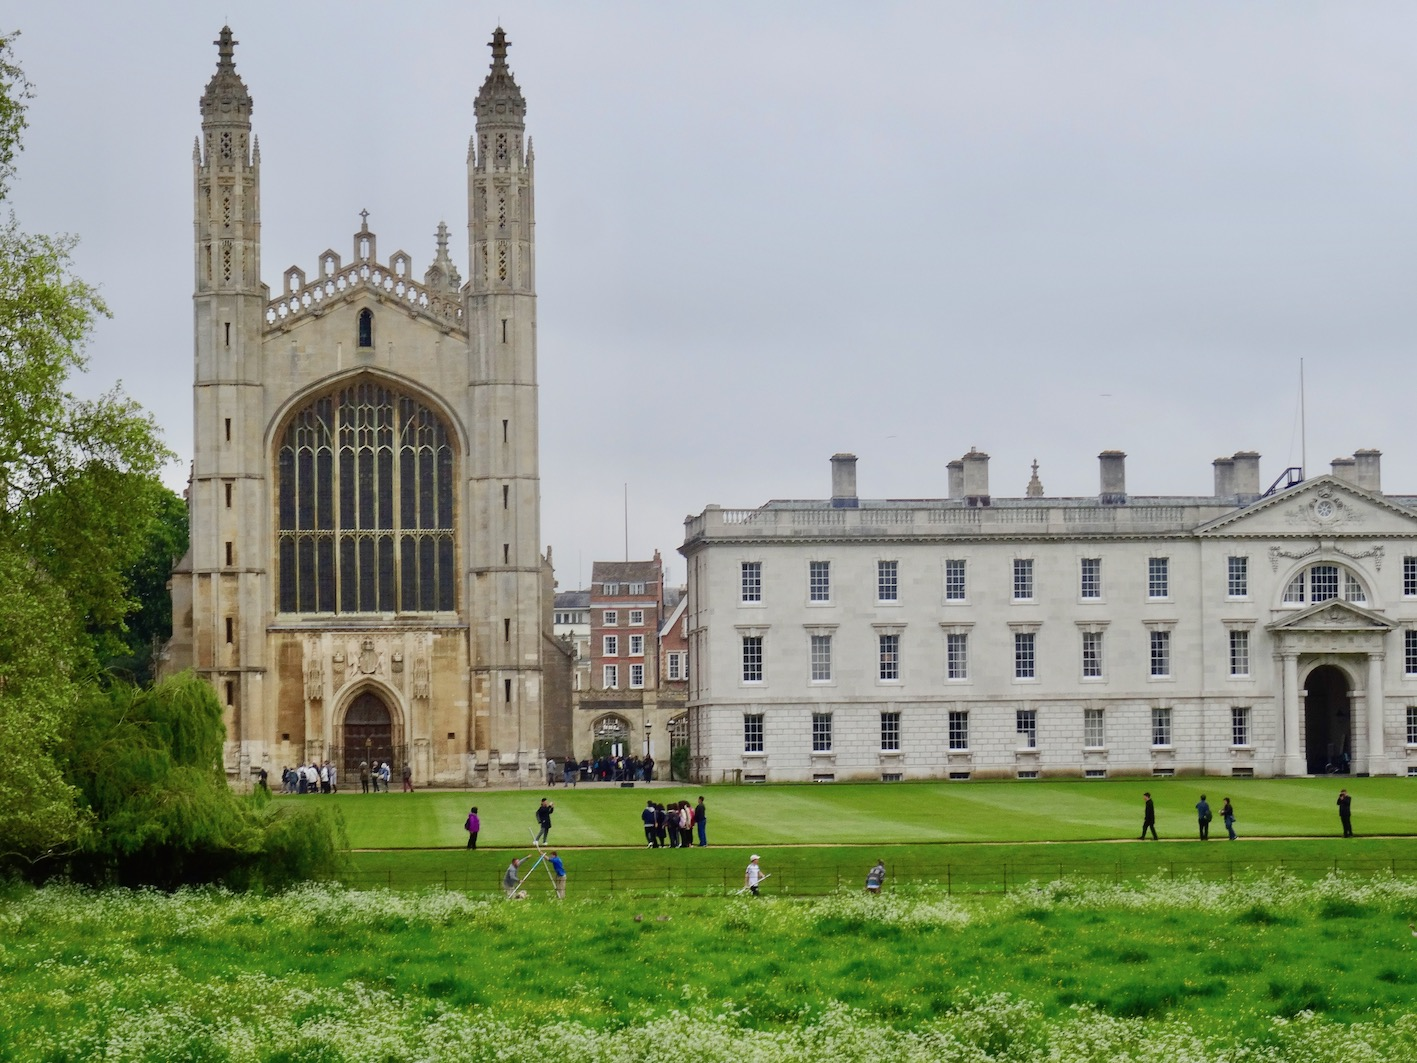 King's College Chapel from The Backs in Cambridge.